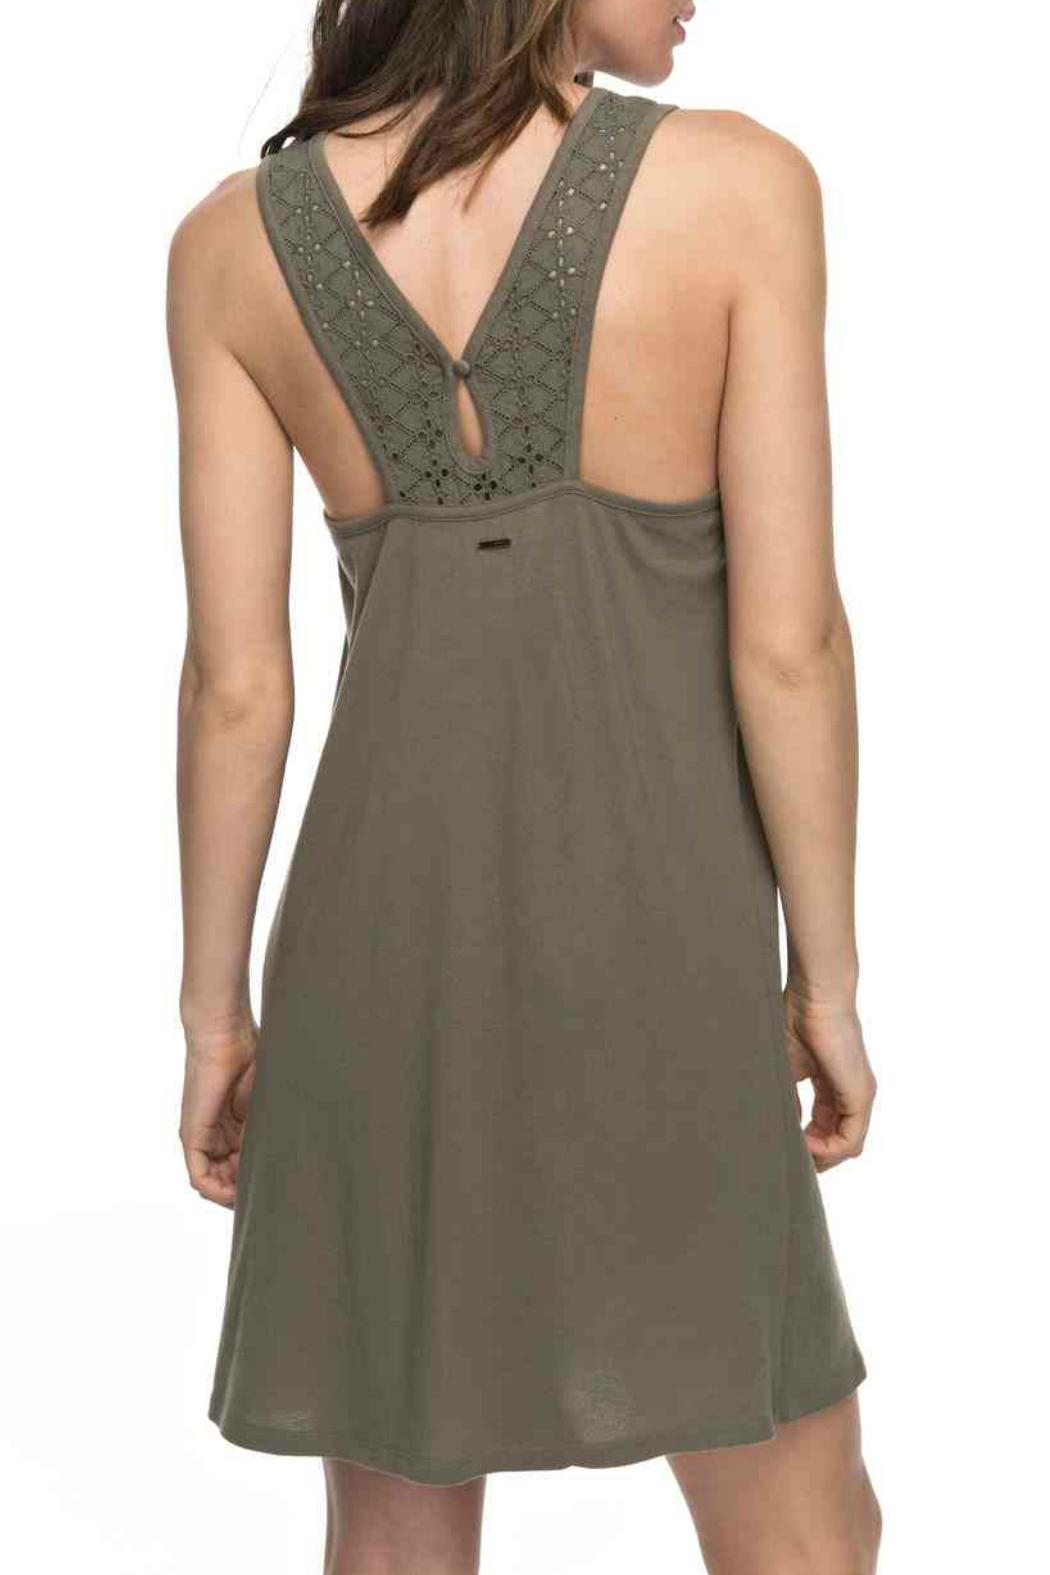 Roxy Stay Simple Sleeveless Dress - Front Full Image